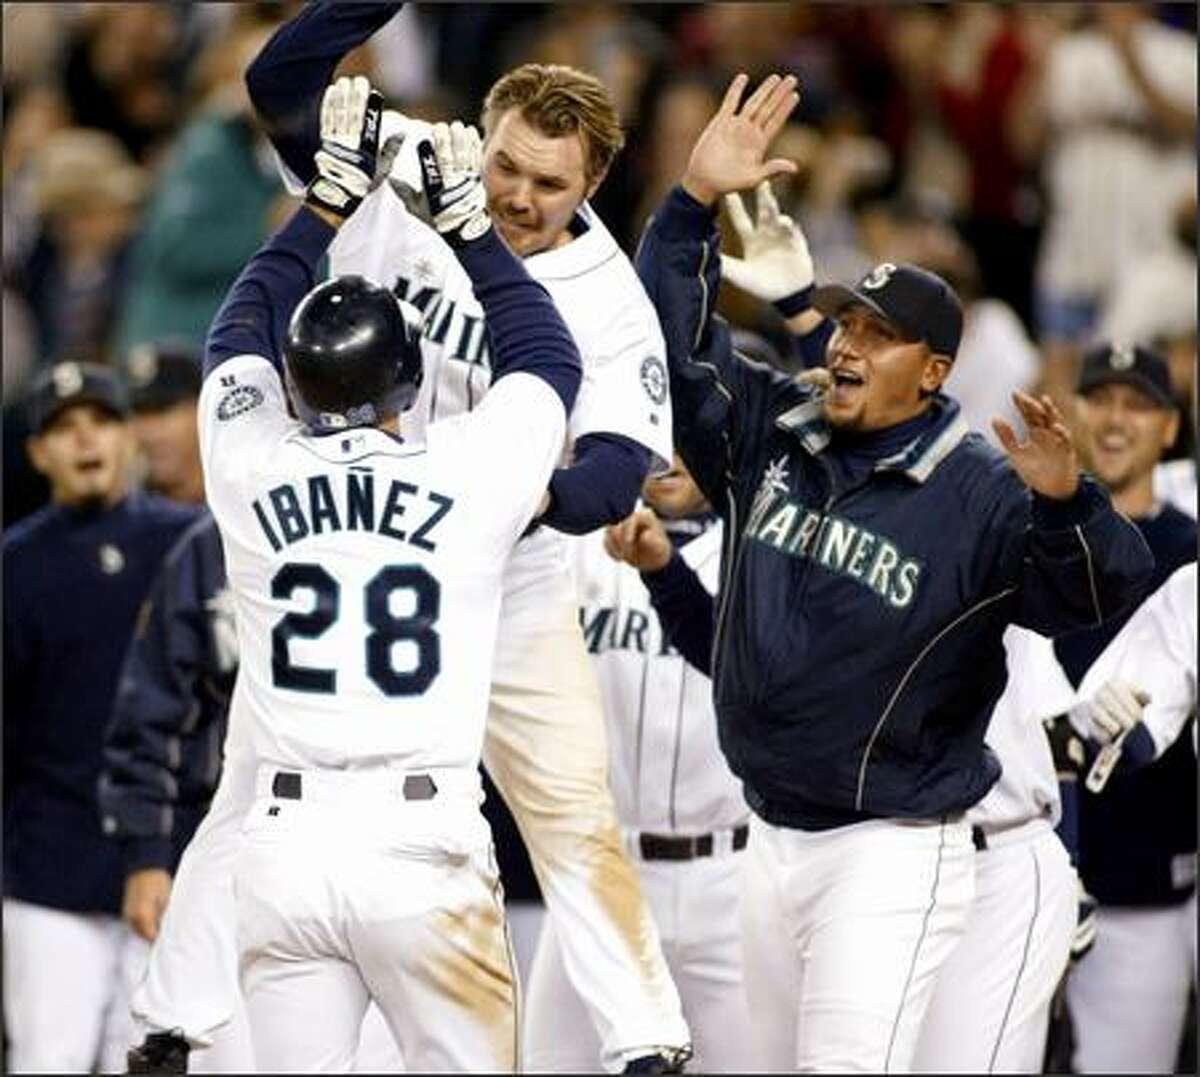 Raul Ibanez is greeted by Scott Spiezio, top, and Freddy Garcia, right, after hitting a walk-off home run in the ninth inning. Ibanez hit a 2-2 pitch off Jim Mecir to right field.